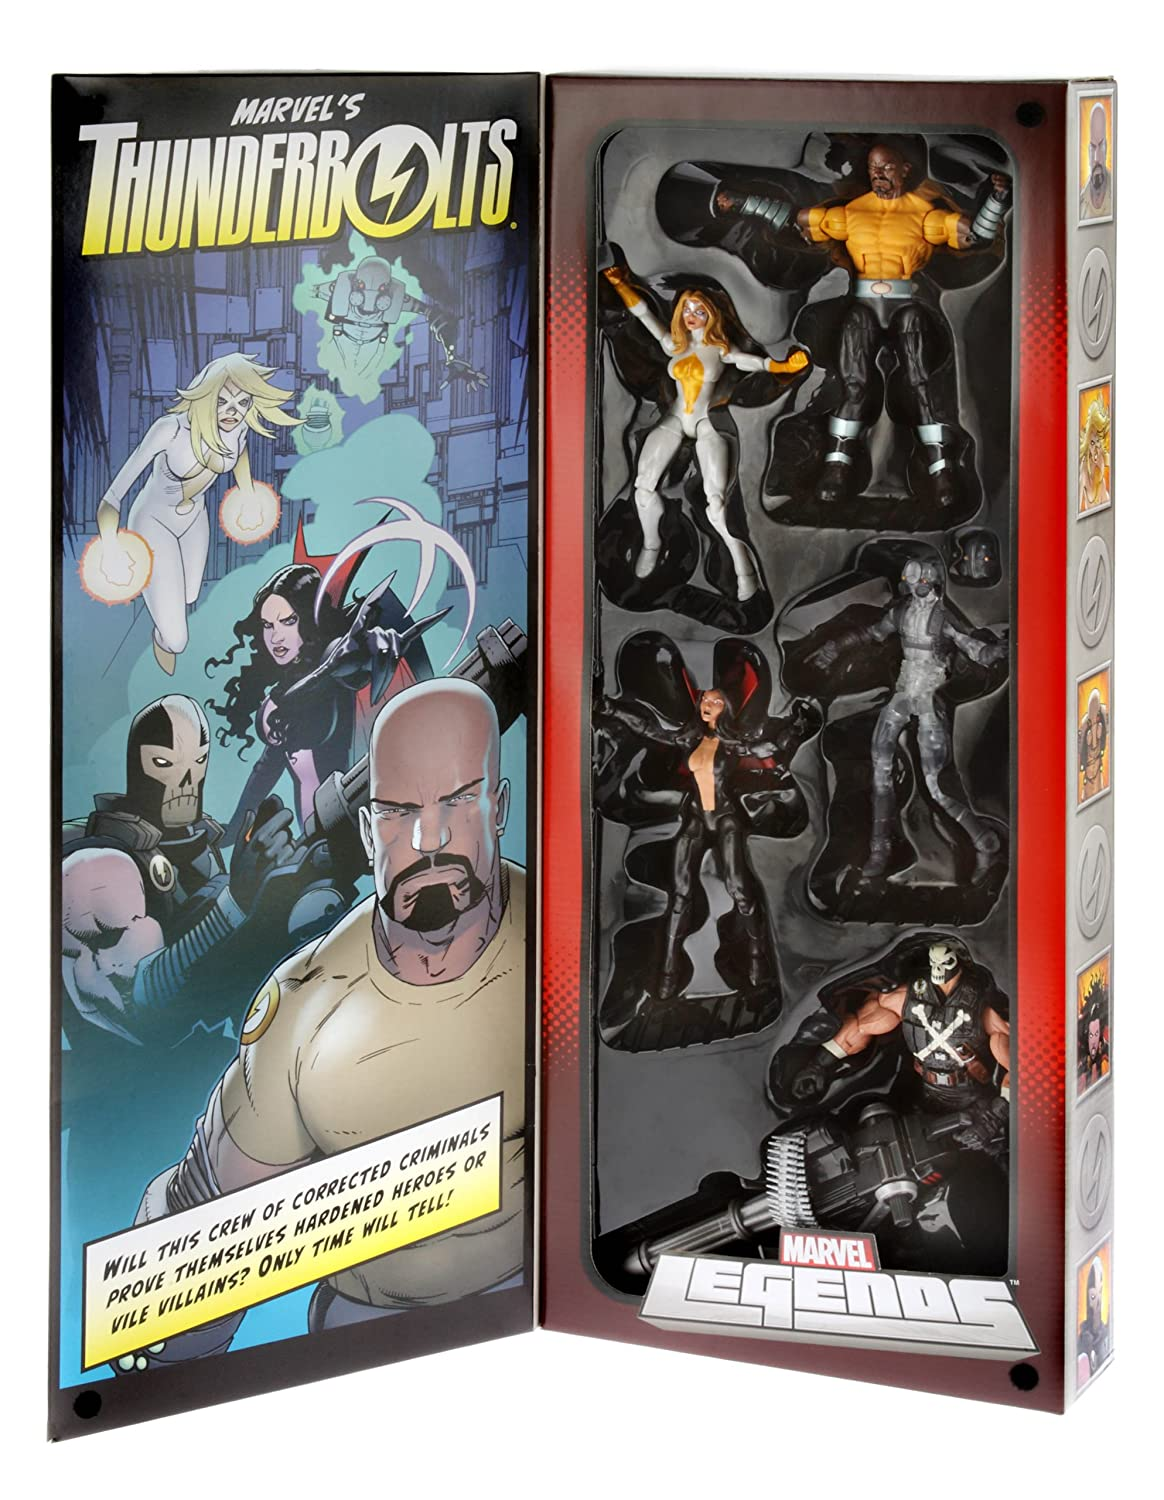 Marvel Legends Actionfiguren-Set: Thunderbolts (SDCC 2013 Exclusive) günstig kaufen